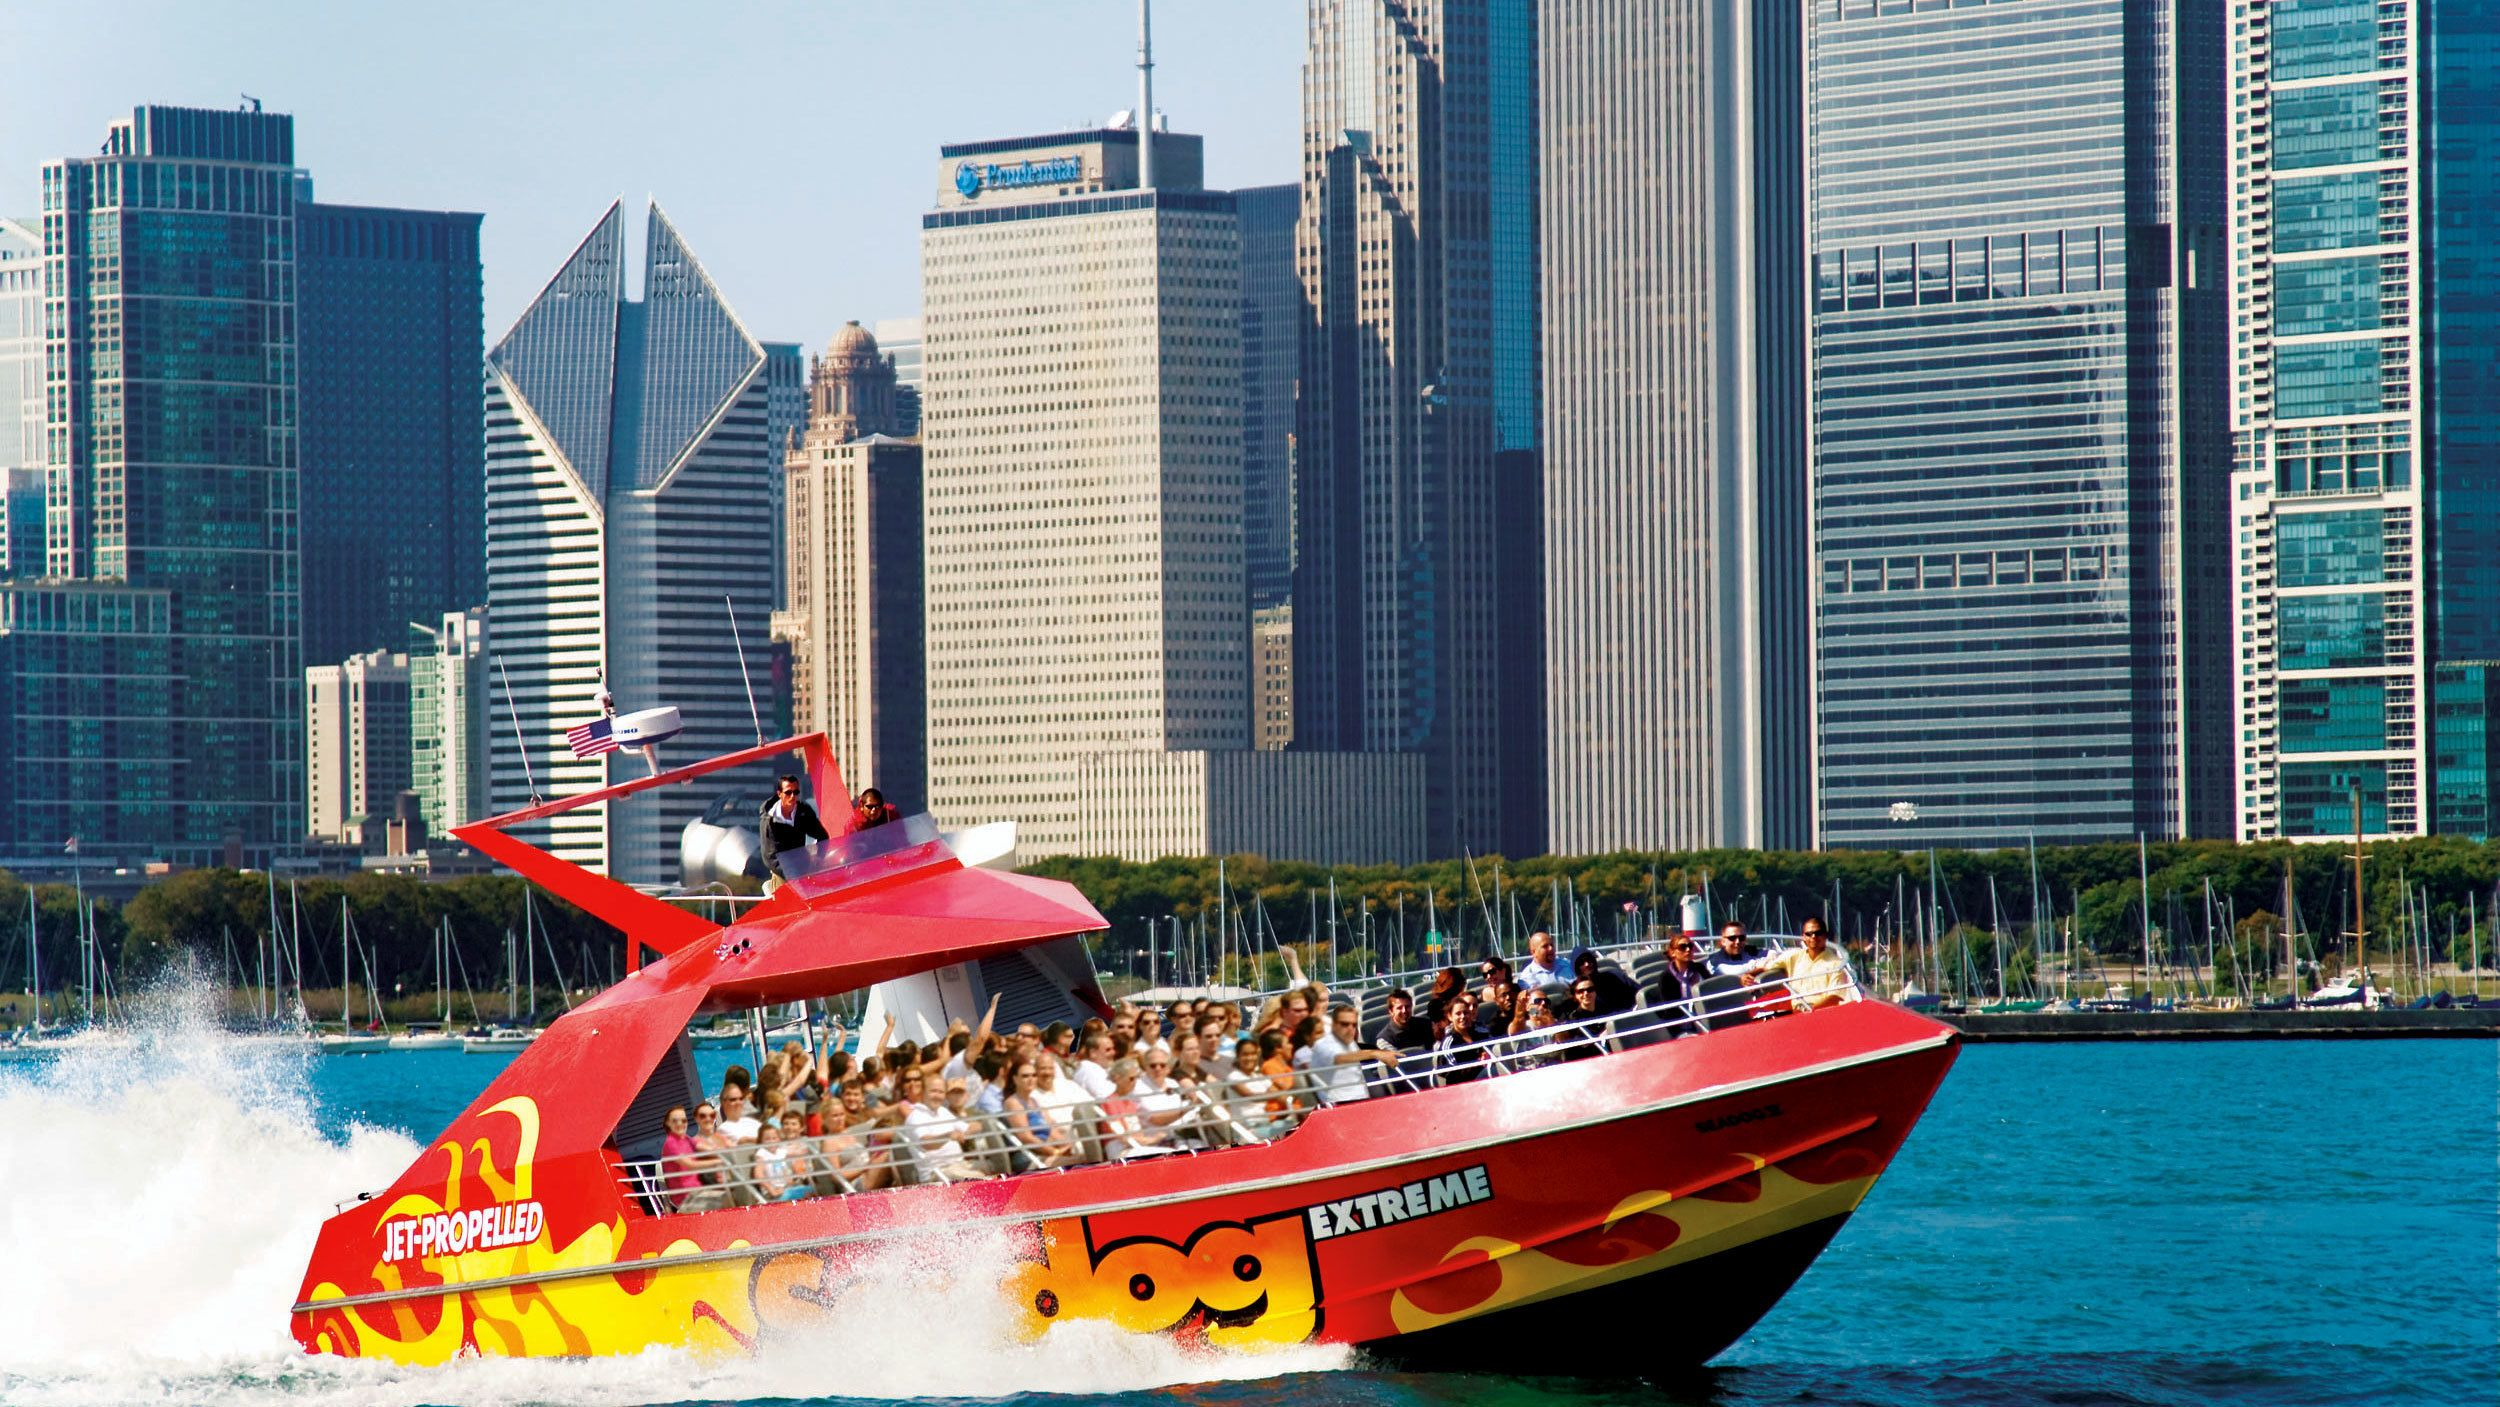 red speed boat on lake michigan in chicago